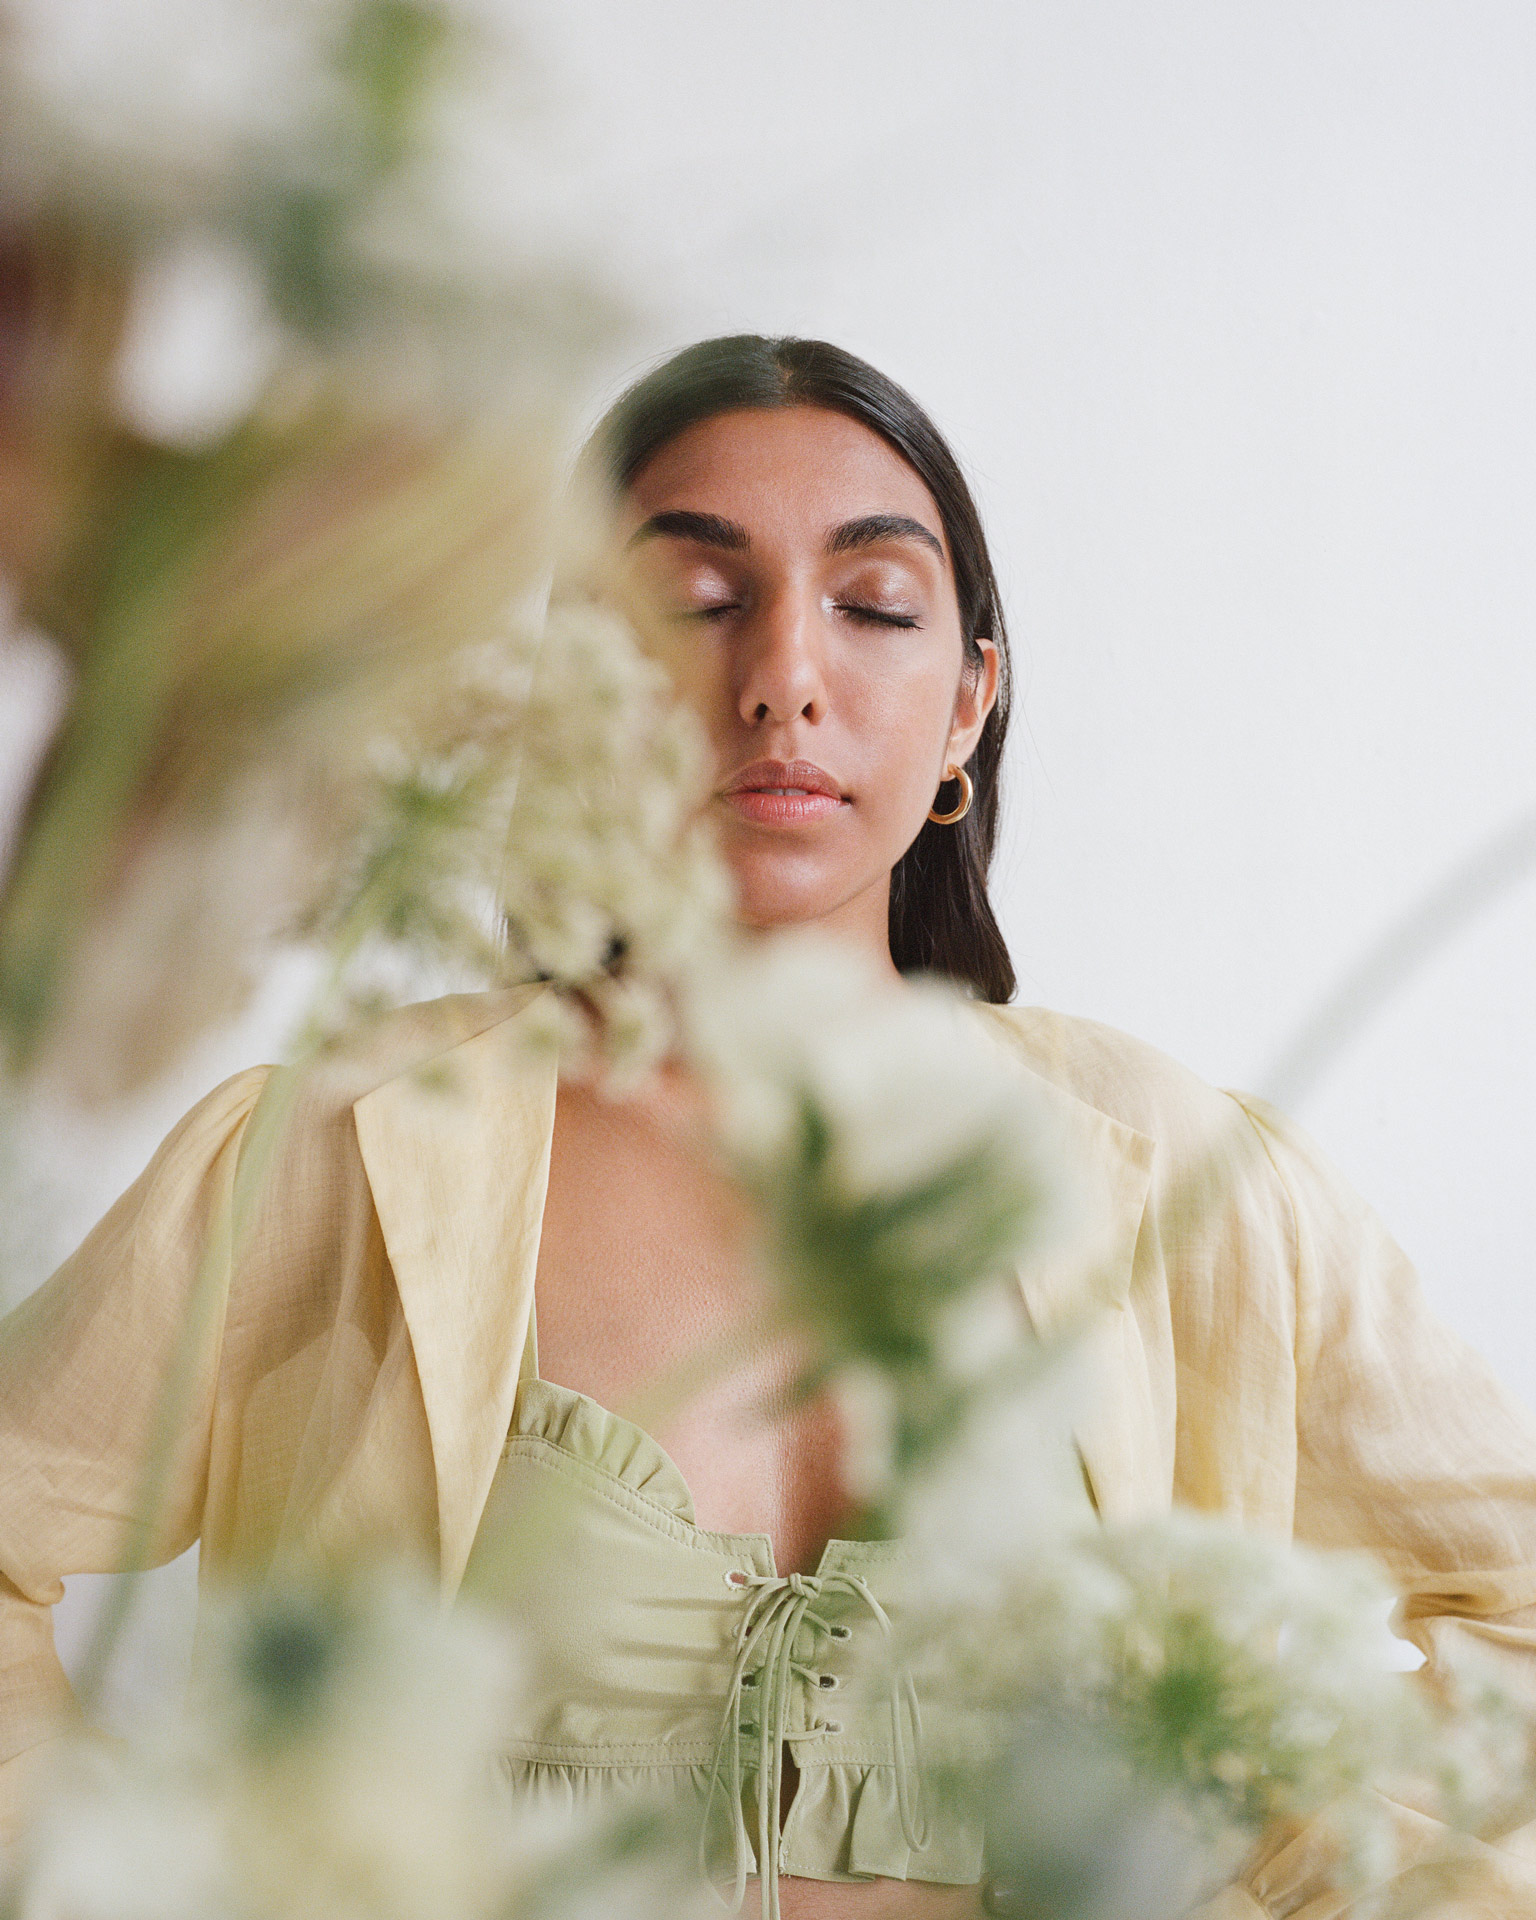 writer Rupi Kaur eyes closed behind plants by Oumayma B Tanfous for Vogue Espana